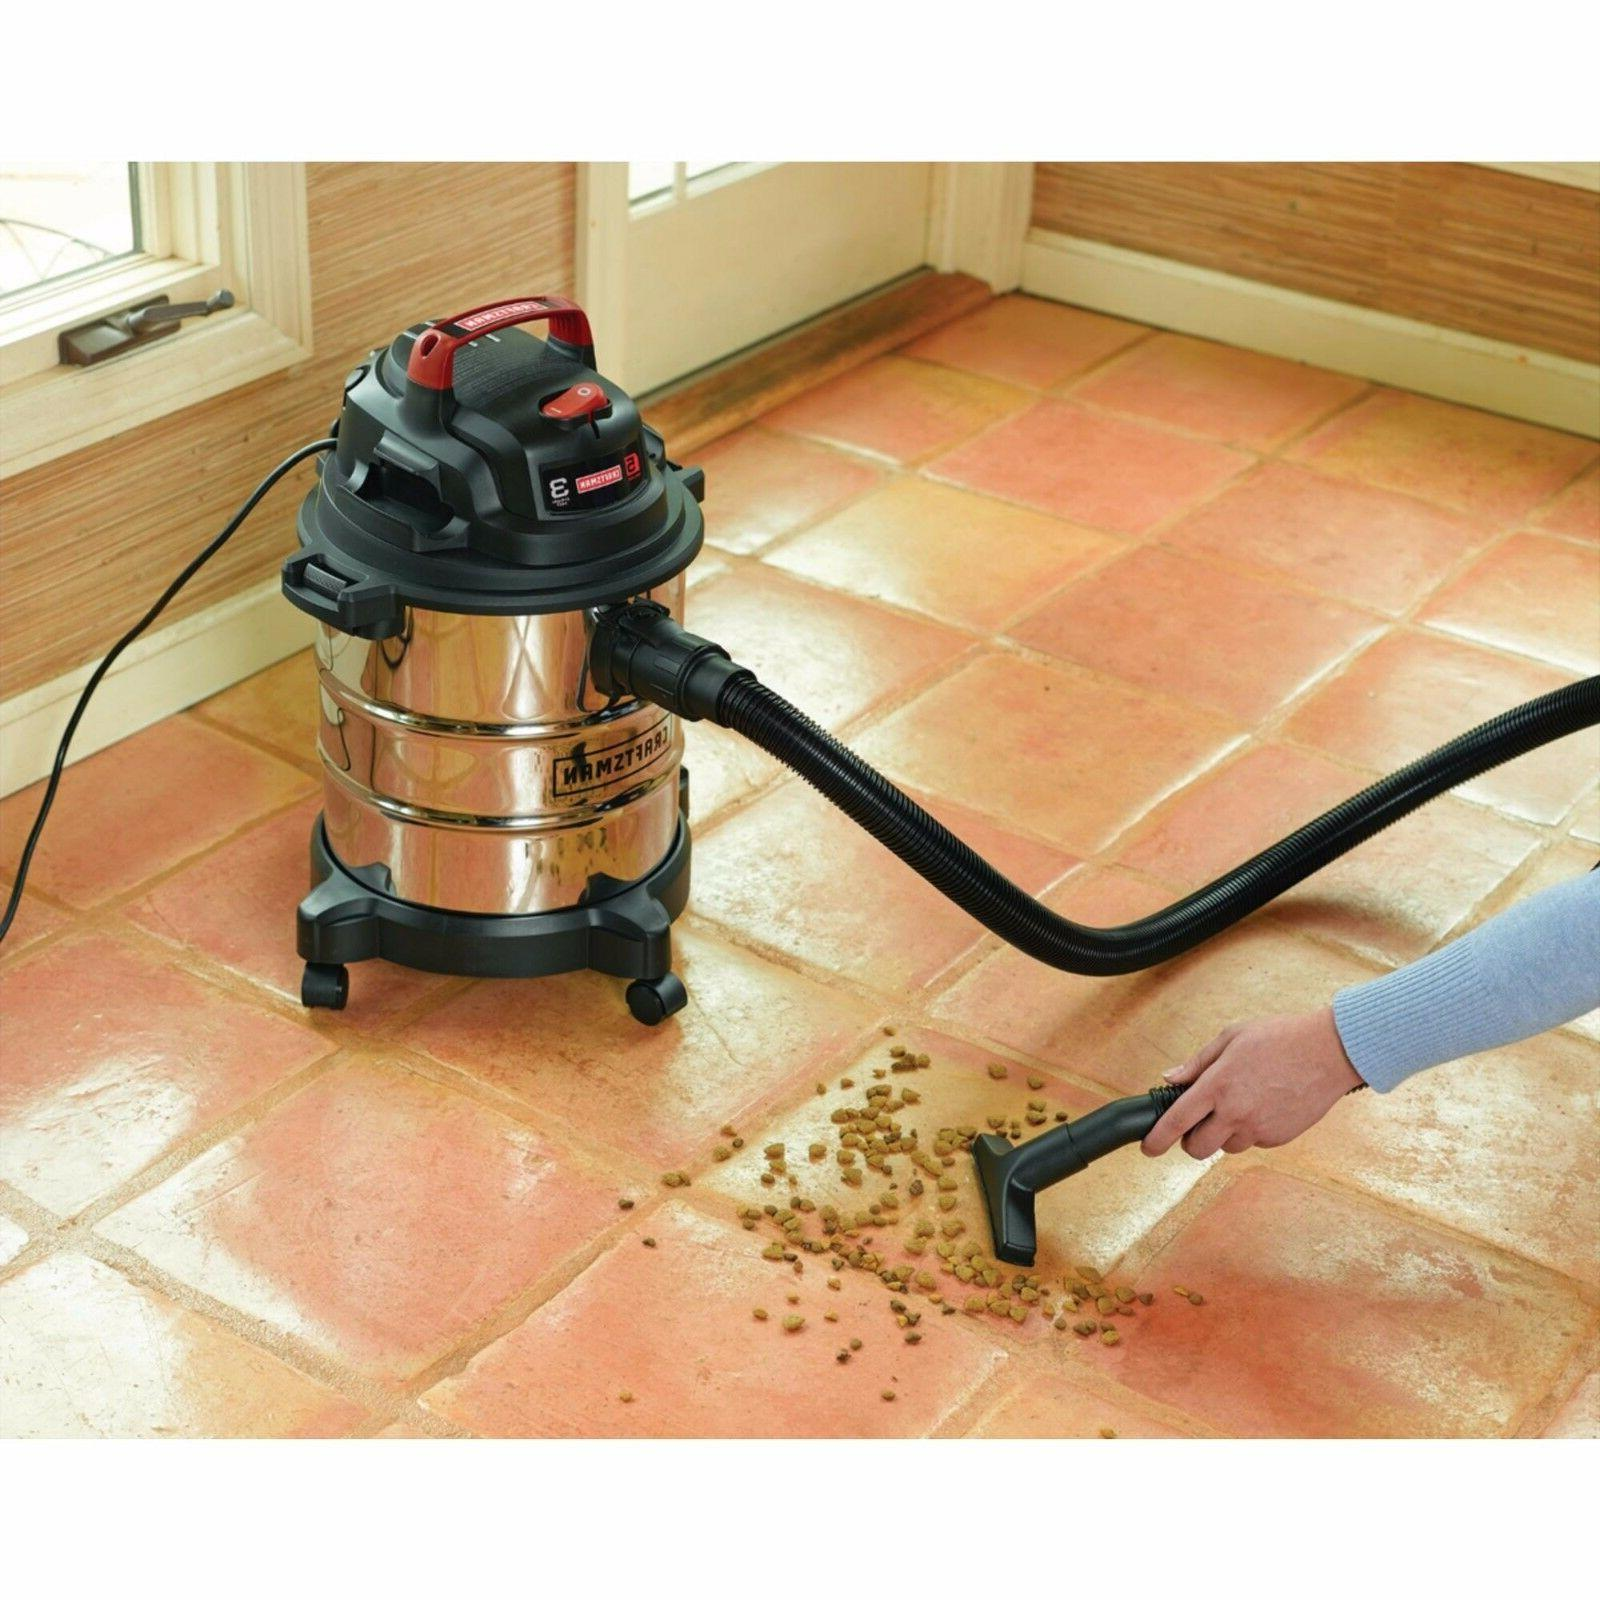 Craftsman Stainless Steel Dry 5 Vacuum HP